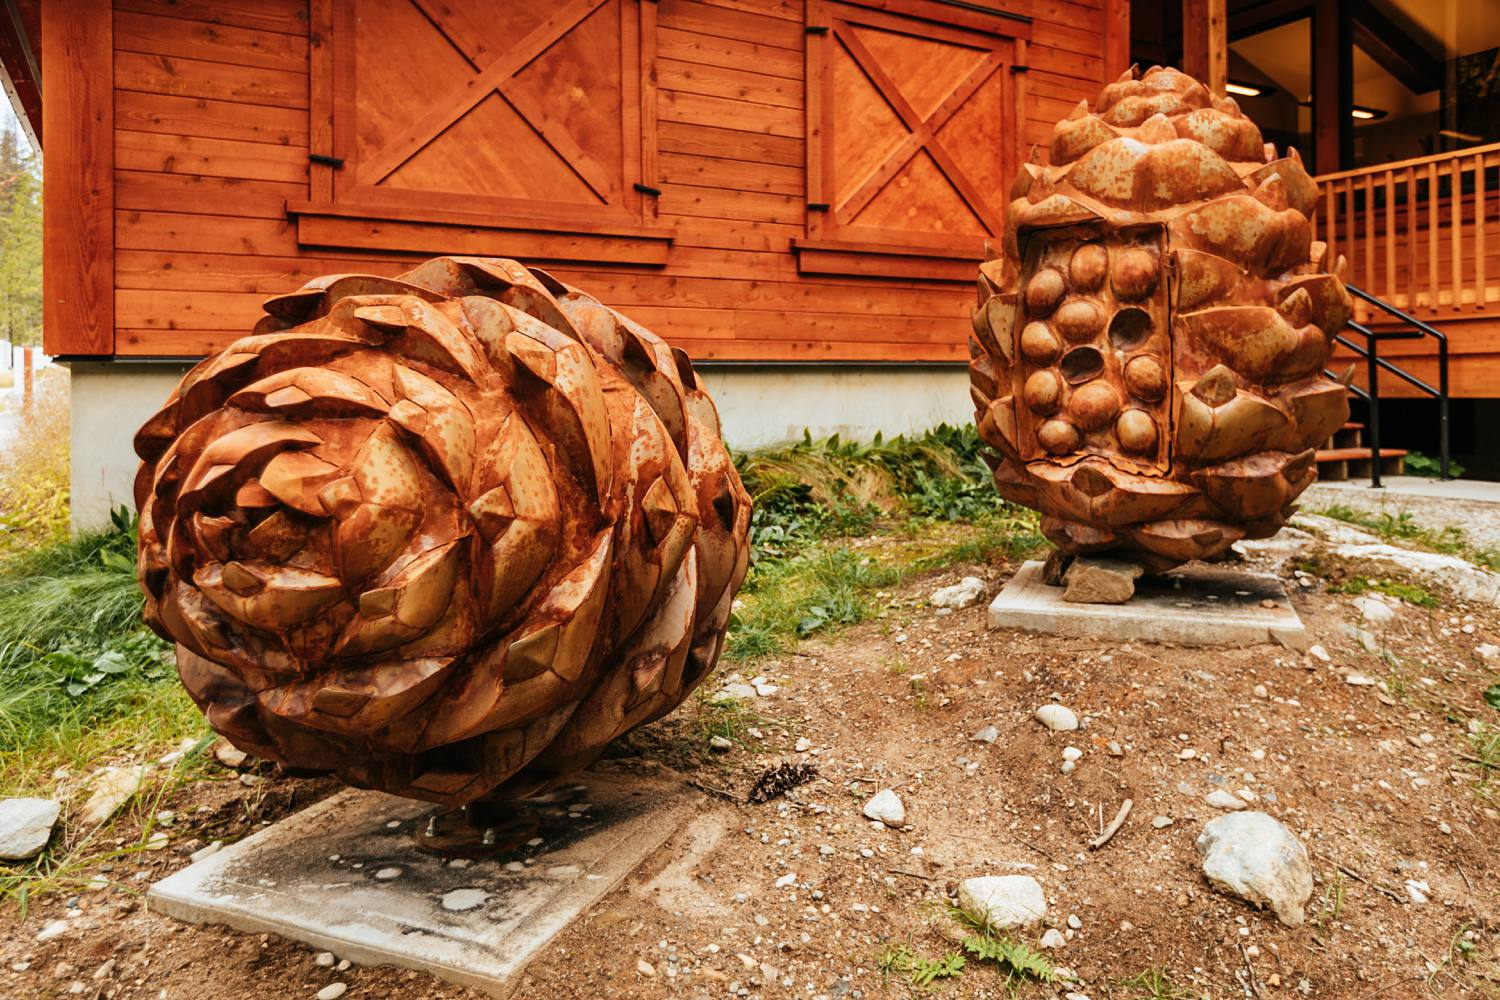 large-whitebark-pinecone-scultpture-made-of-metal-on-display-in-mount-revelstoke-national-park-british-columbia-by-canadian-artist-kyle-thornley